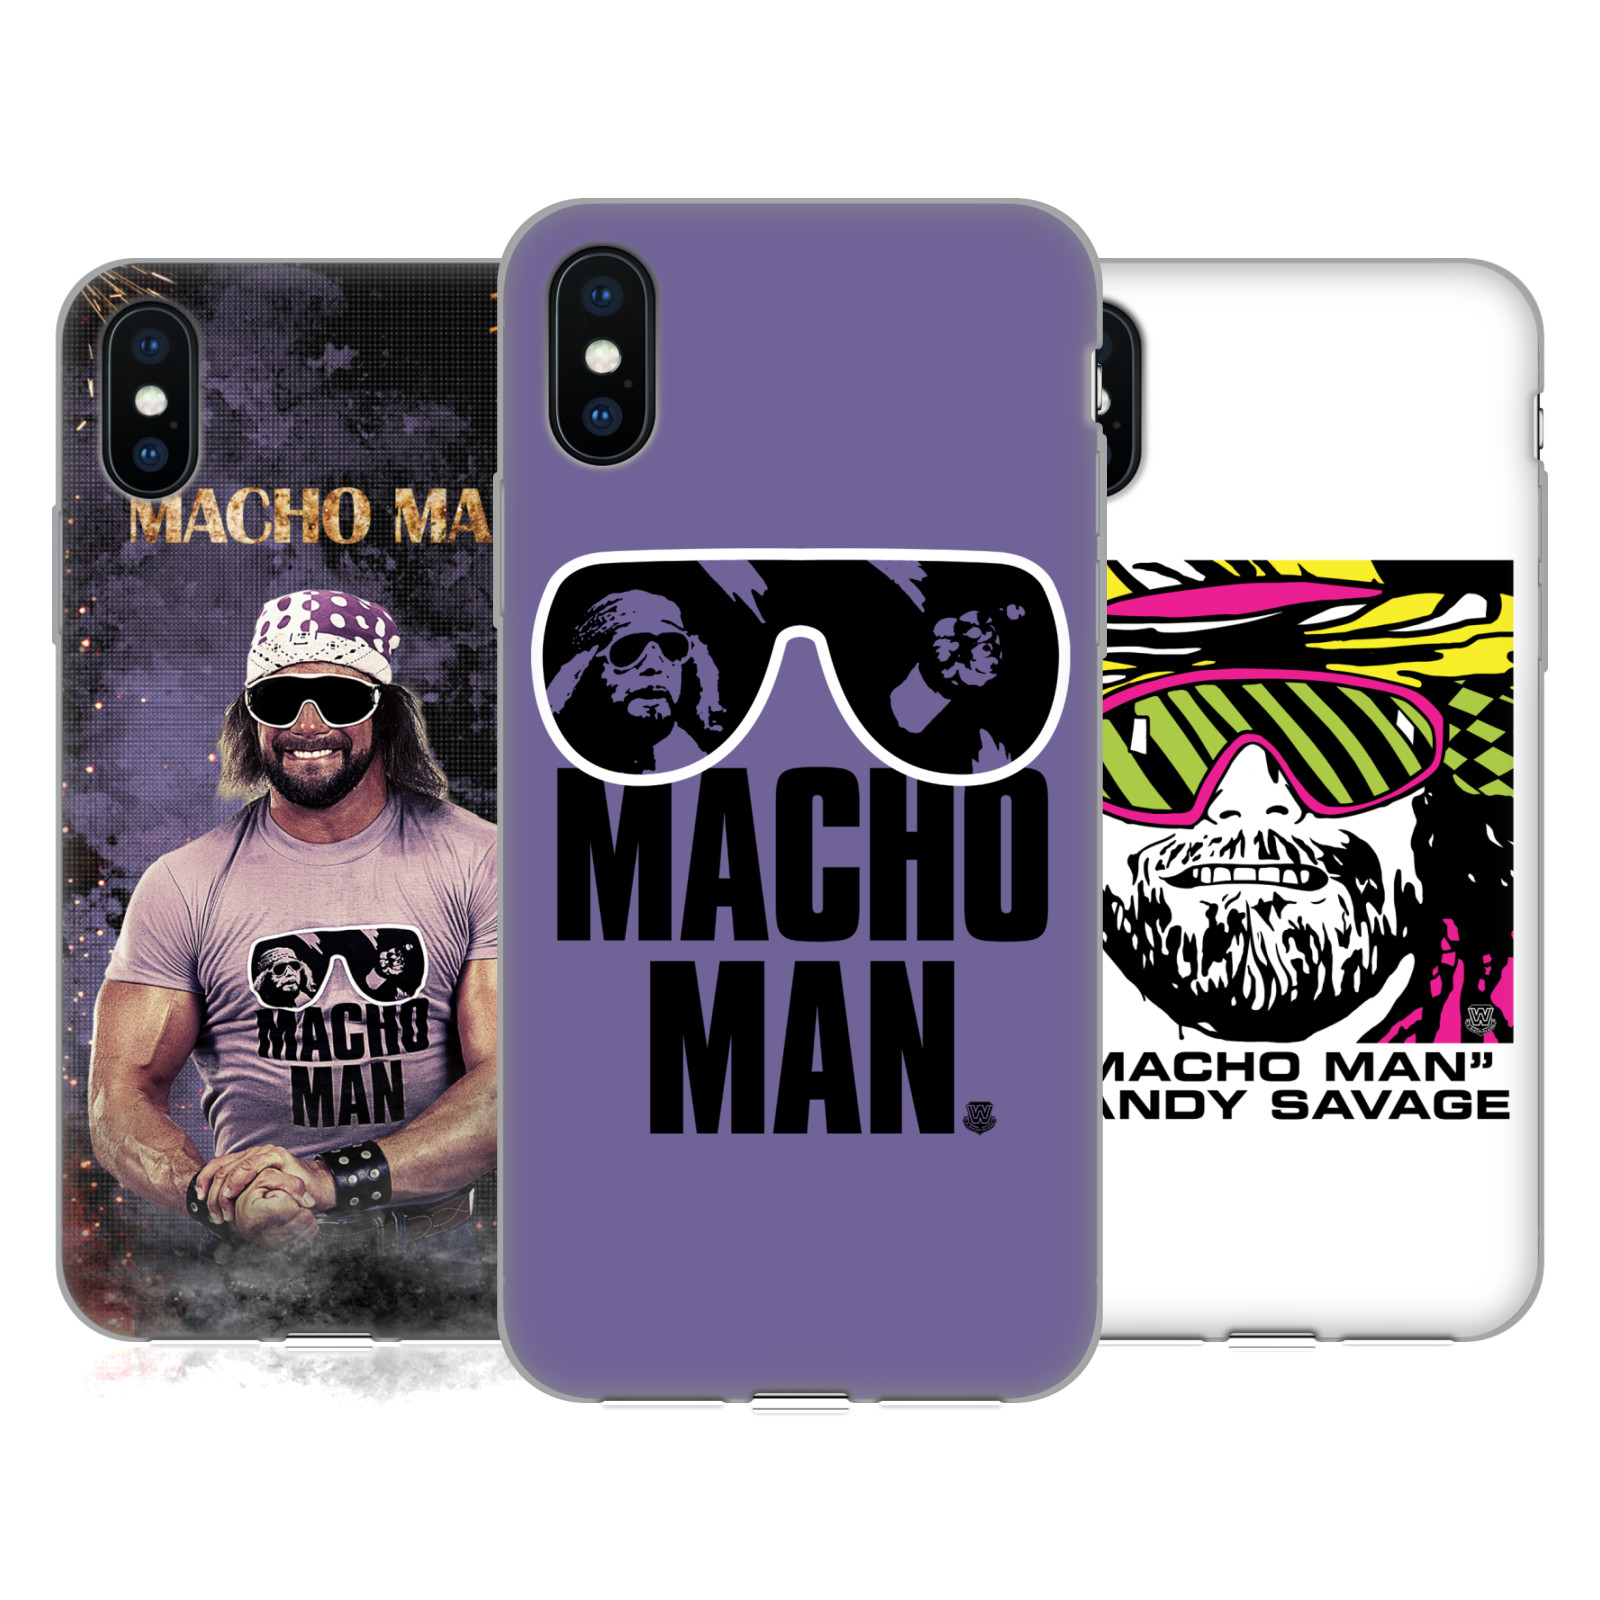 WWE <!--translate-lineup-->Macho Man Randy Savage<!--translate-lineup-->